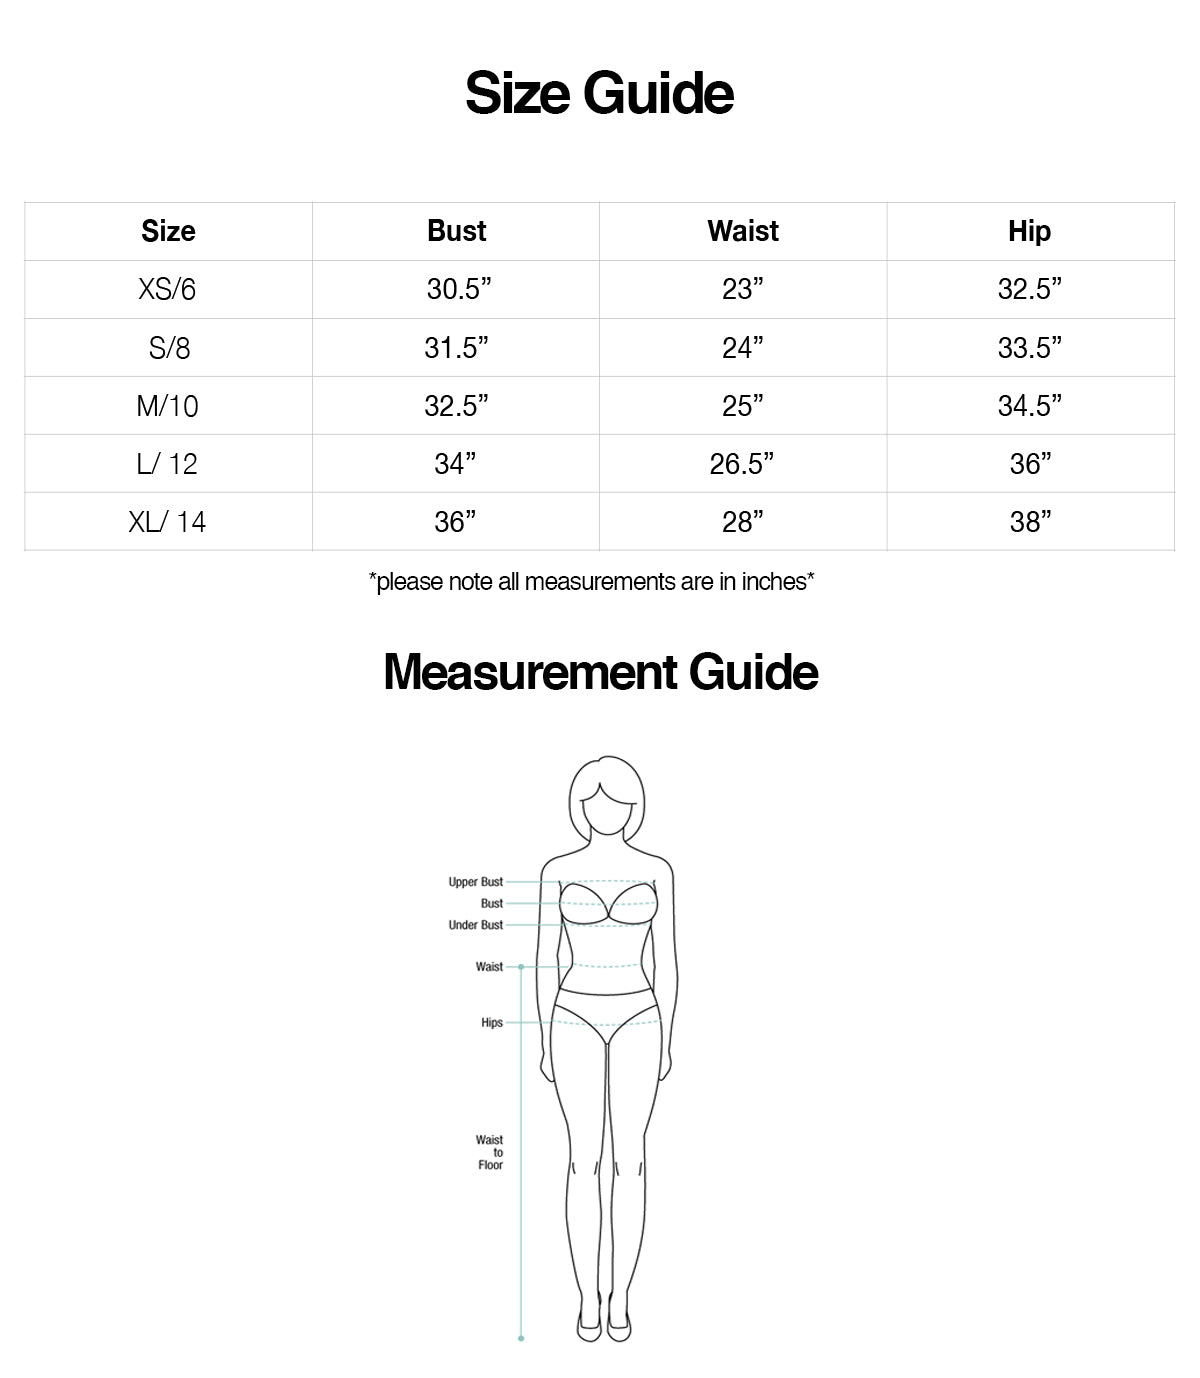 AHNIKO Size & Measurement Guide